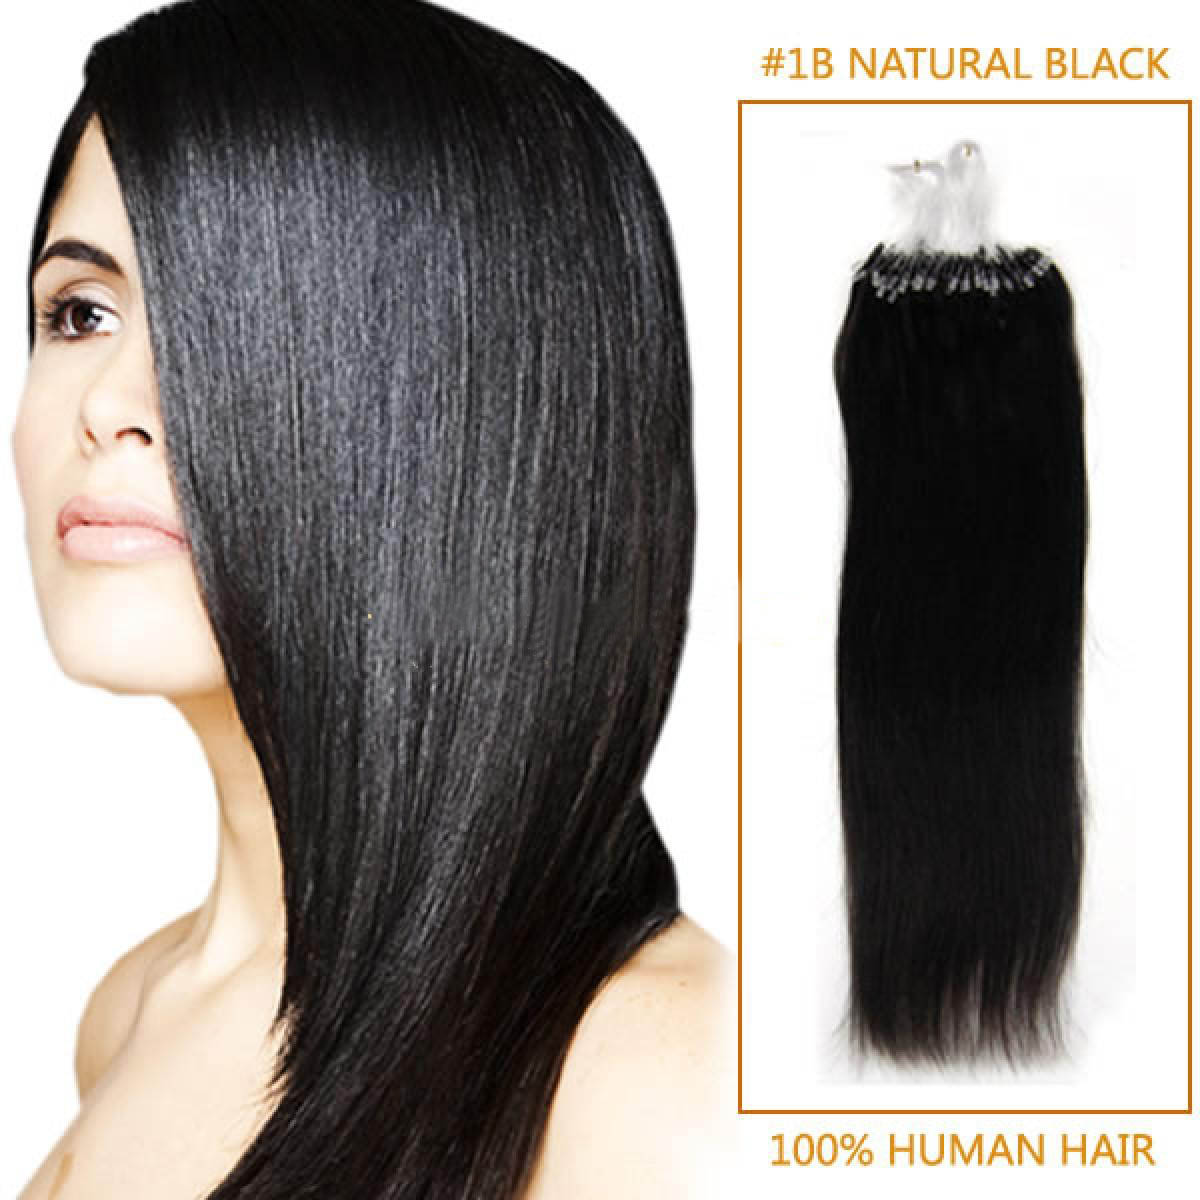 22 Inch 1b Natural Black Micro Loop Human Hair Extensions 100s